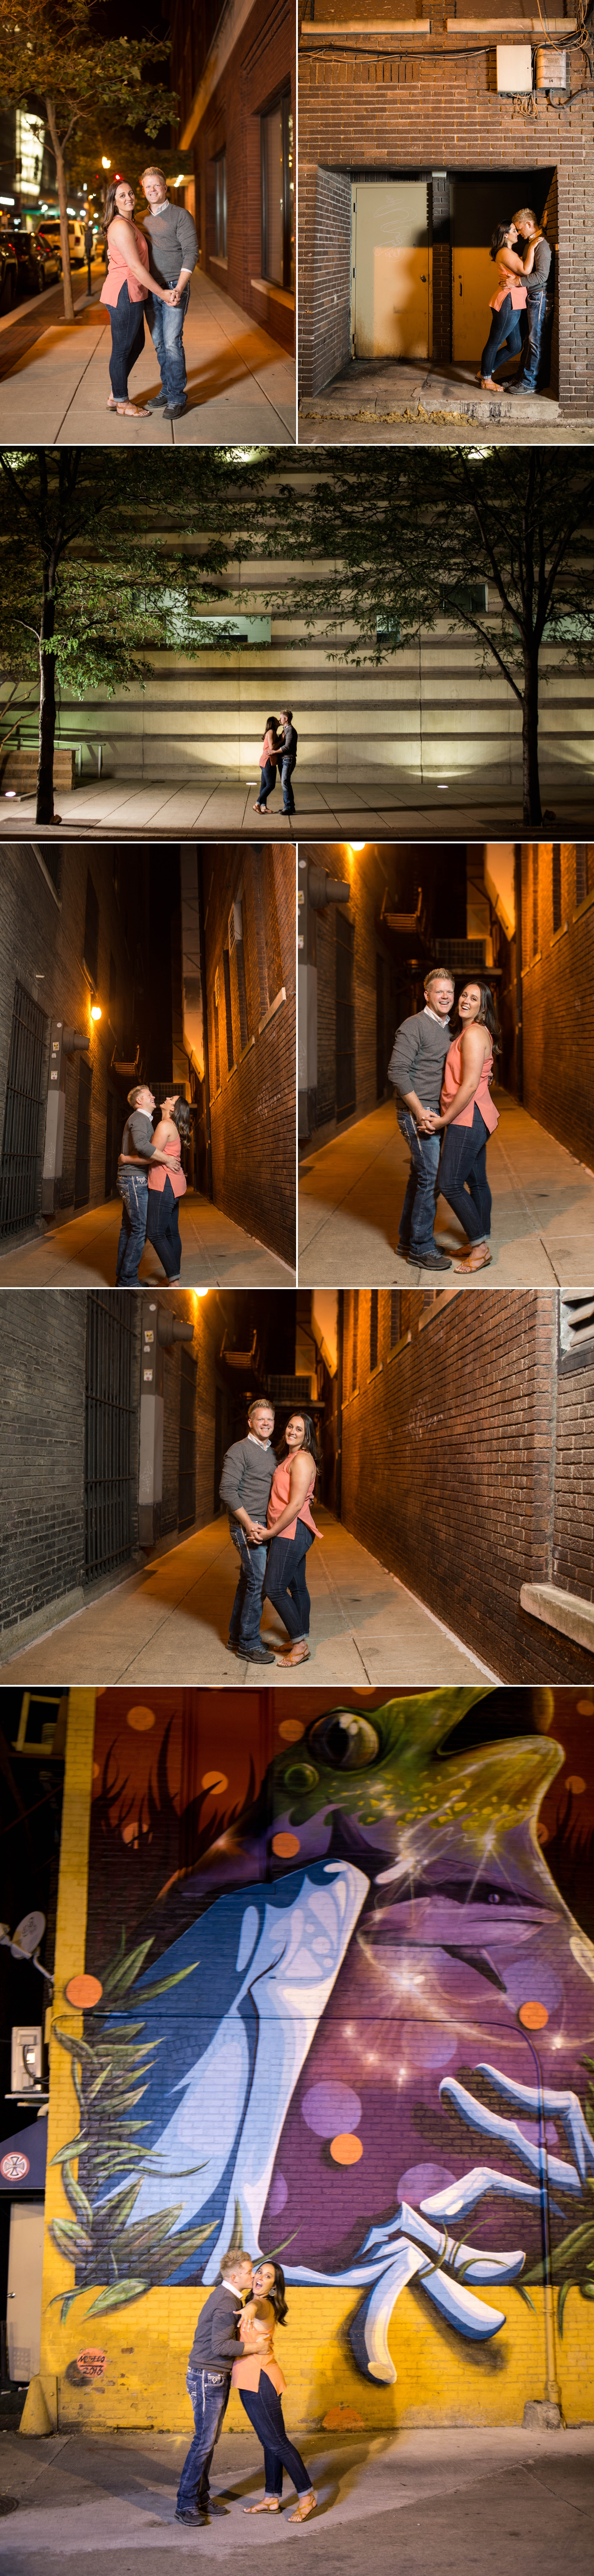 engagement - engaged - engagement session - e session - love - downtown - fort wayne - alley - pint n slice - night - street light